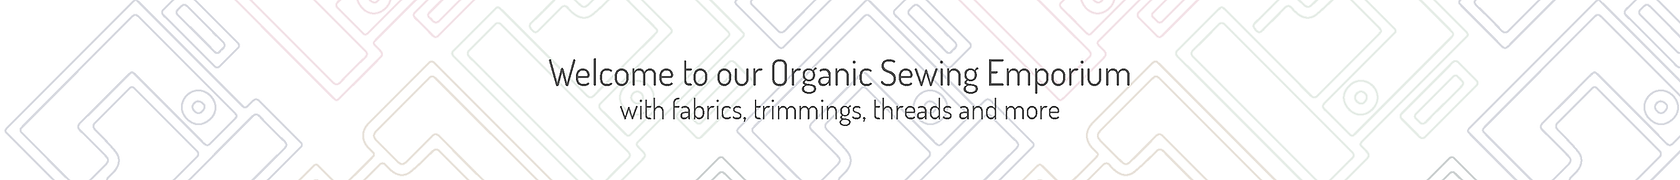 Welcome to our Organic Sewing Emporium with fabrics, trimmings, threads, zips and more